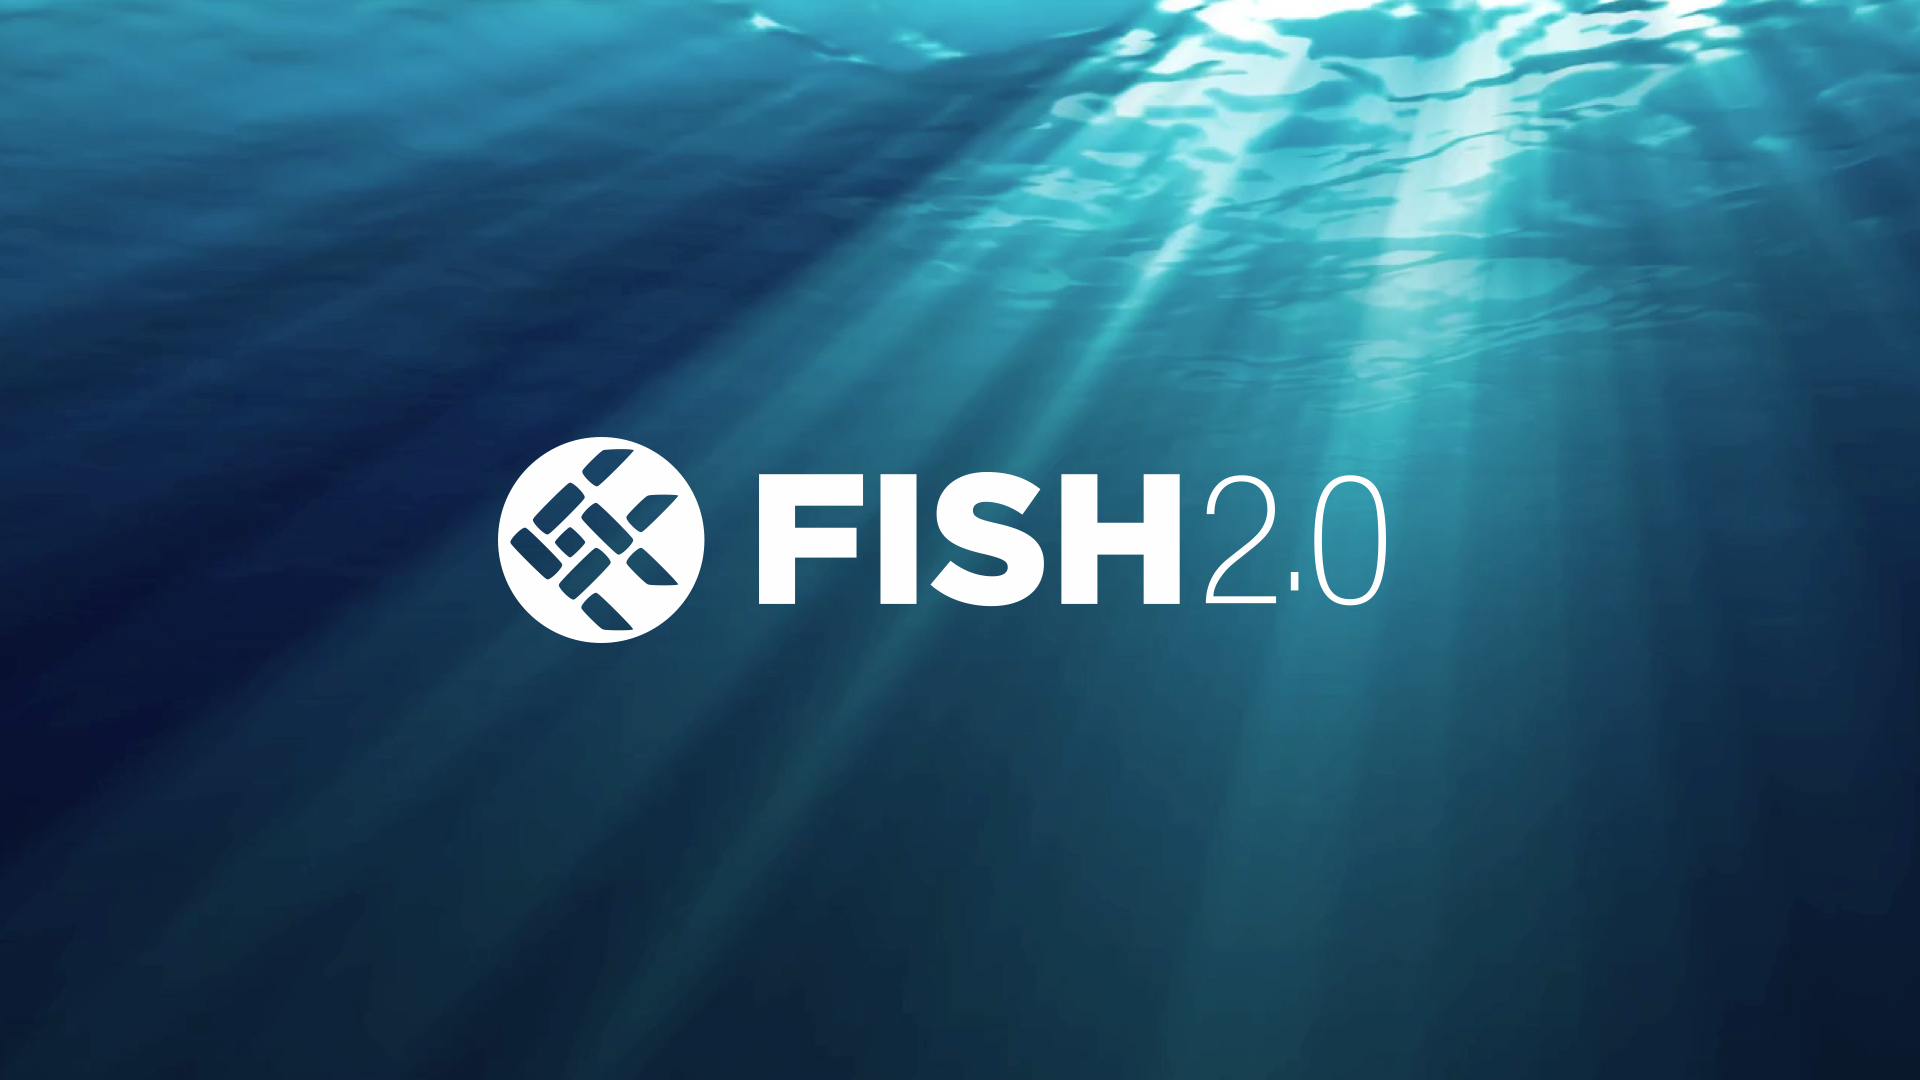 Fish 2.0 Conference 2016-2017